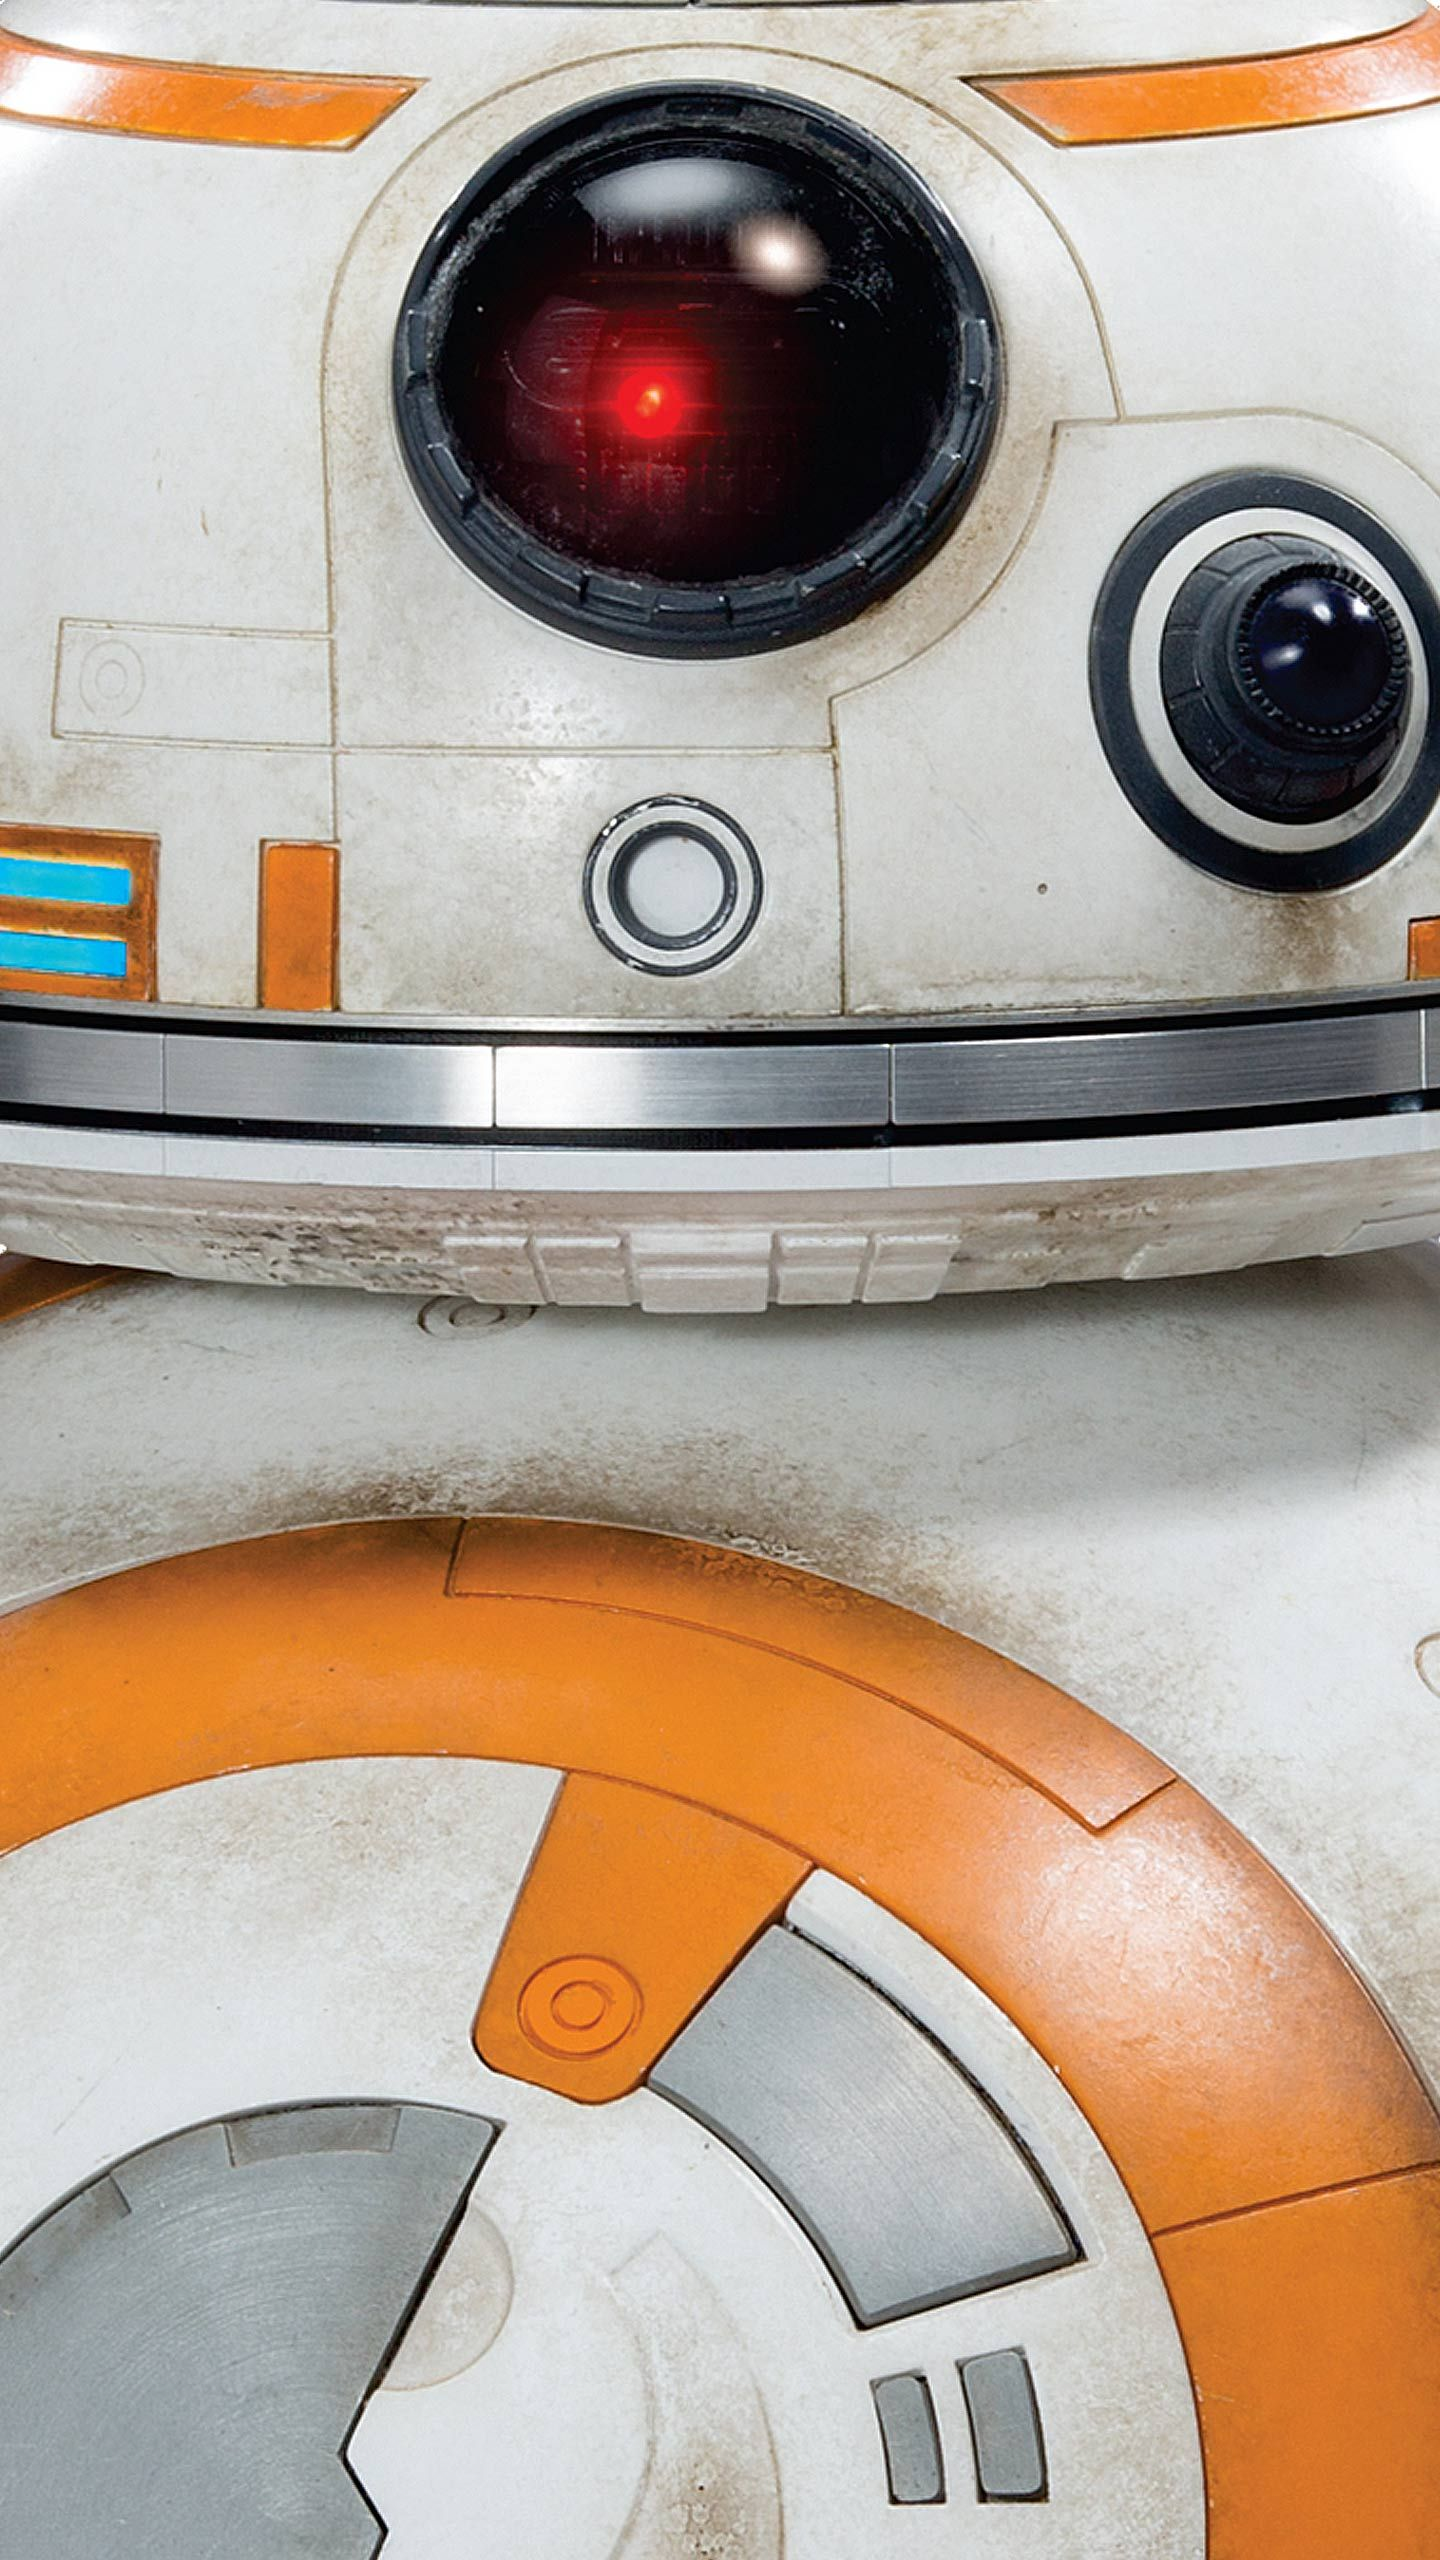 Bb8 2 Jpg 1440 2560 Star Wars Wallpaper Iphone Star Wars Wallpaper Star Wars Bb8